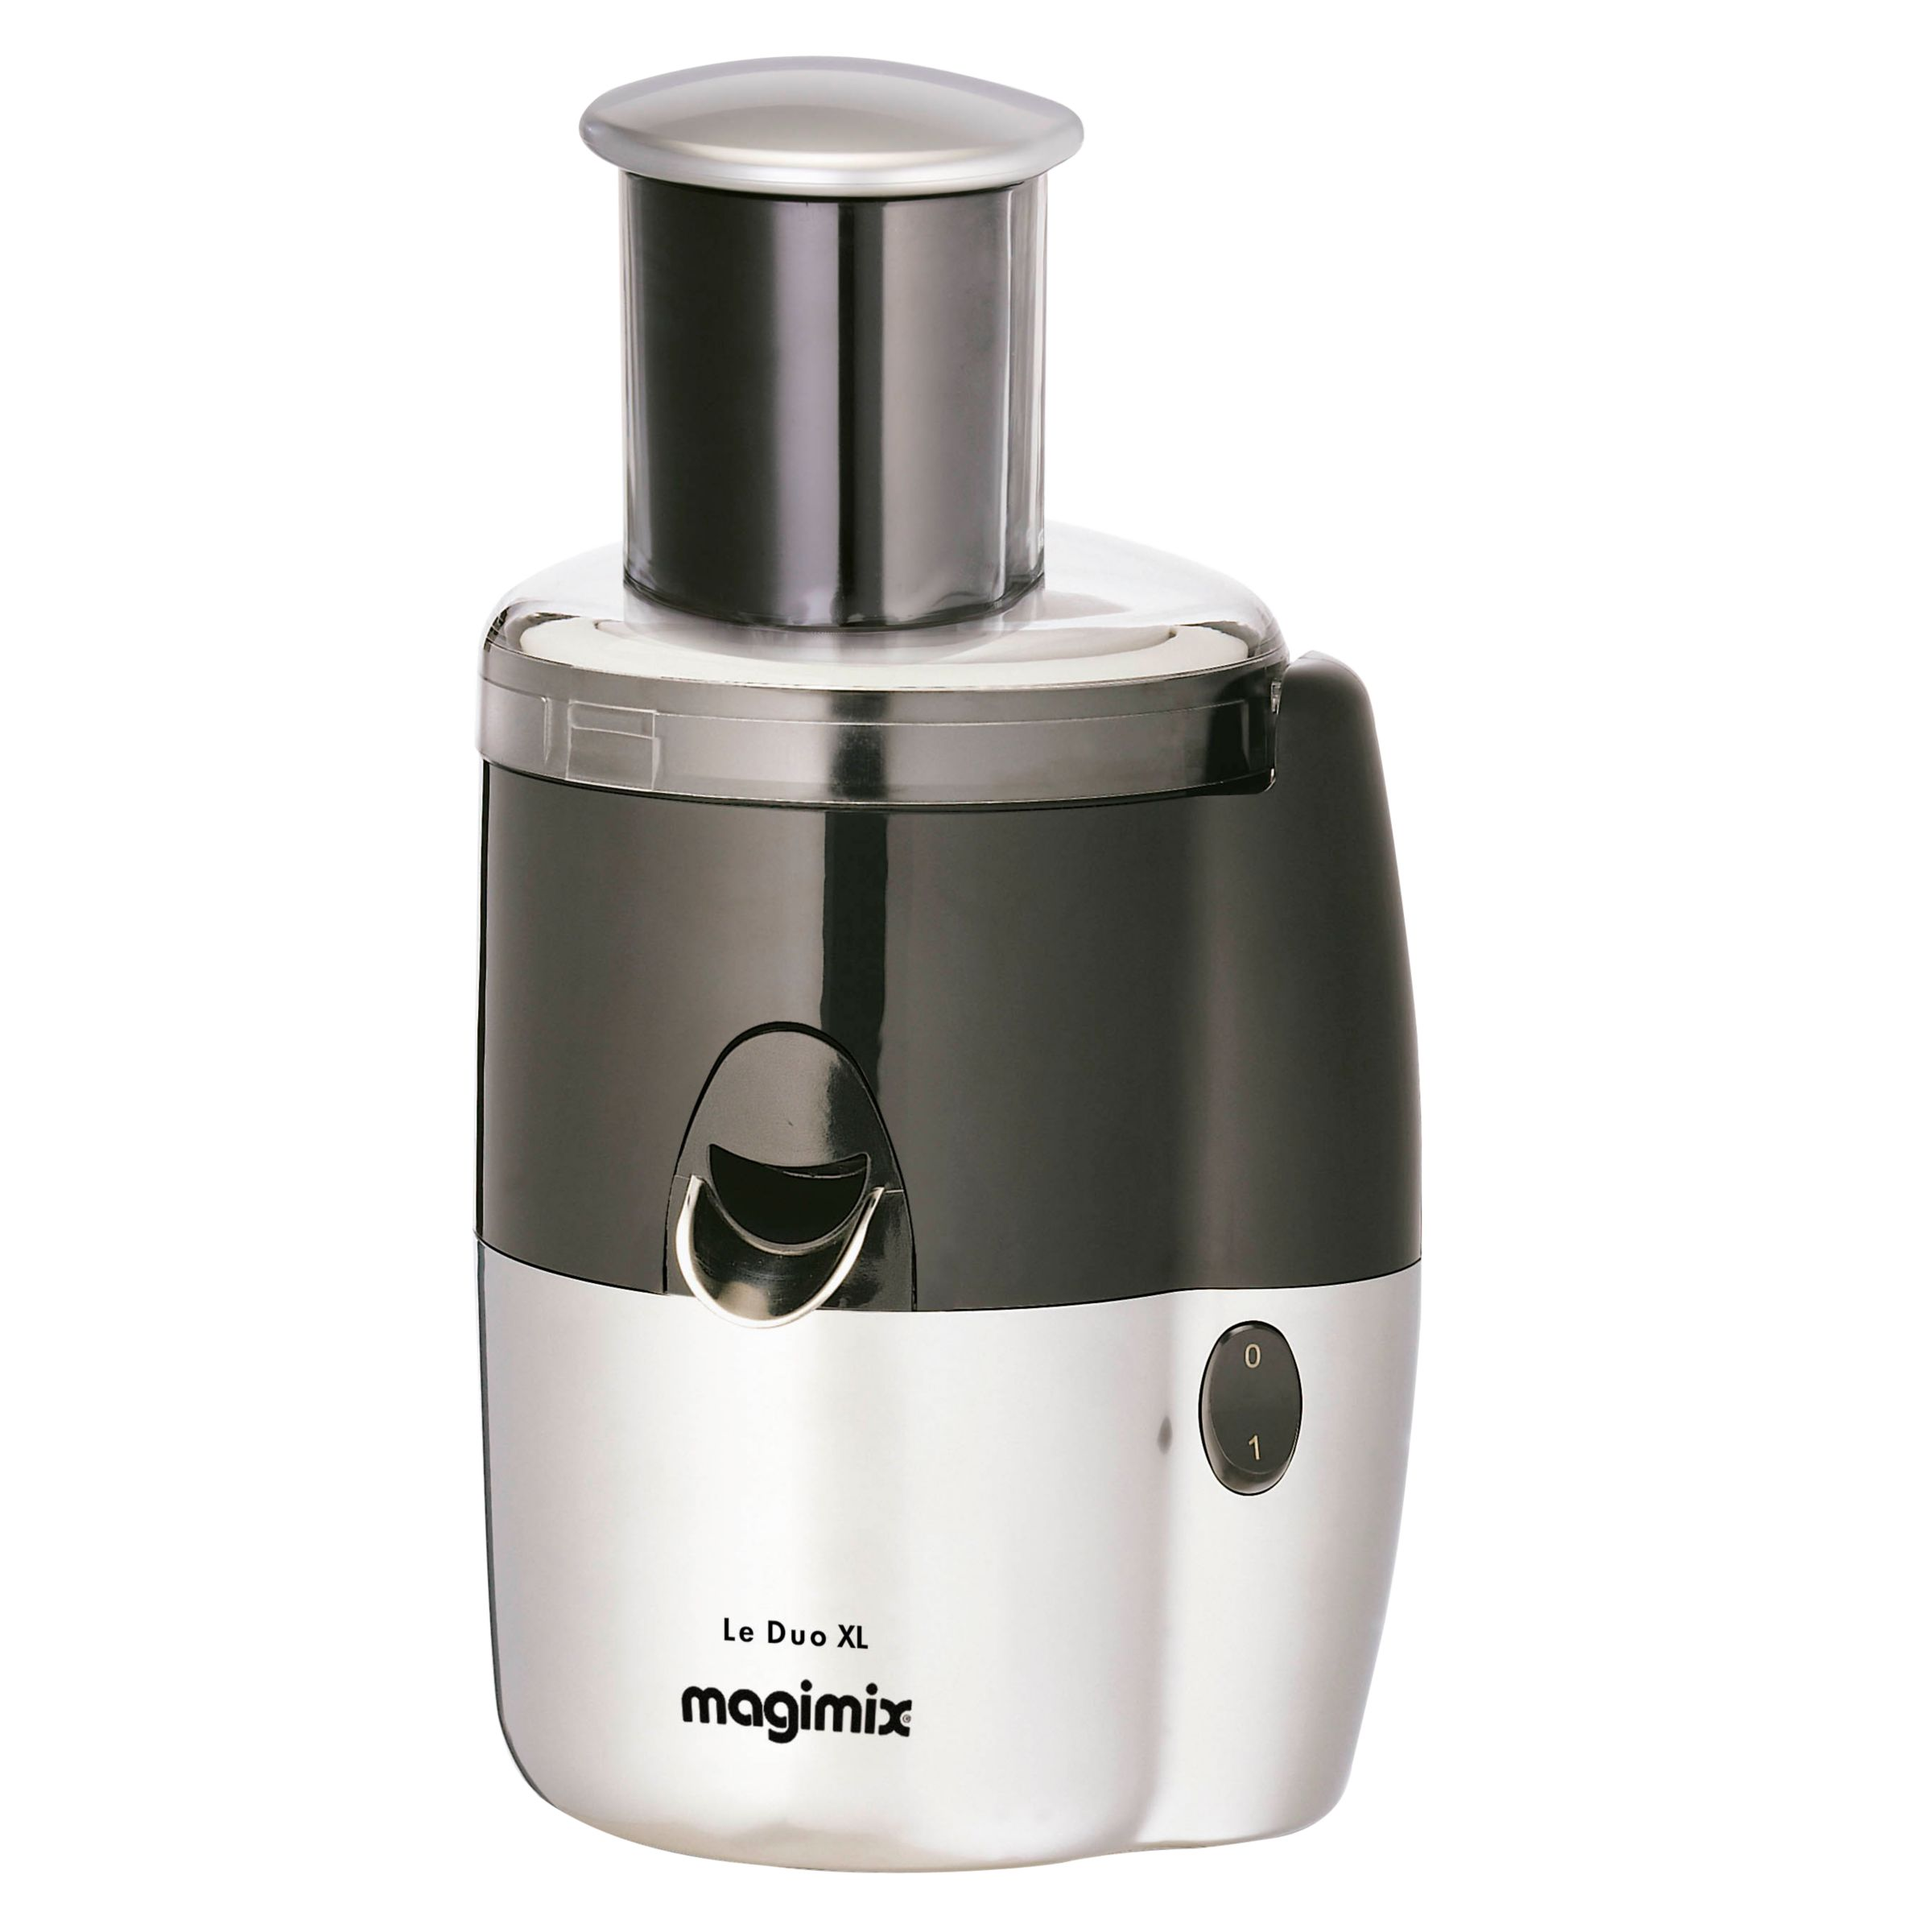 Magimix Le Duo XL Juice Extractor, Satin Steel at John Lewis